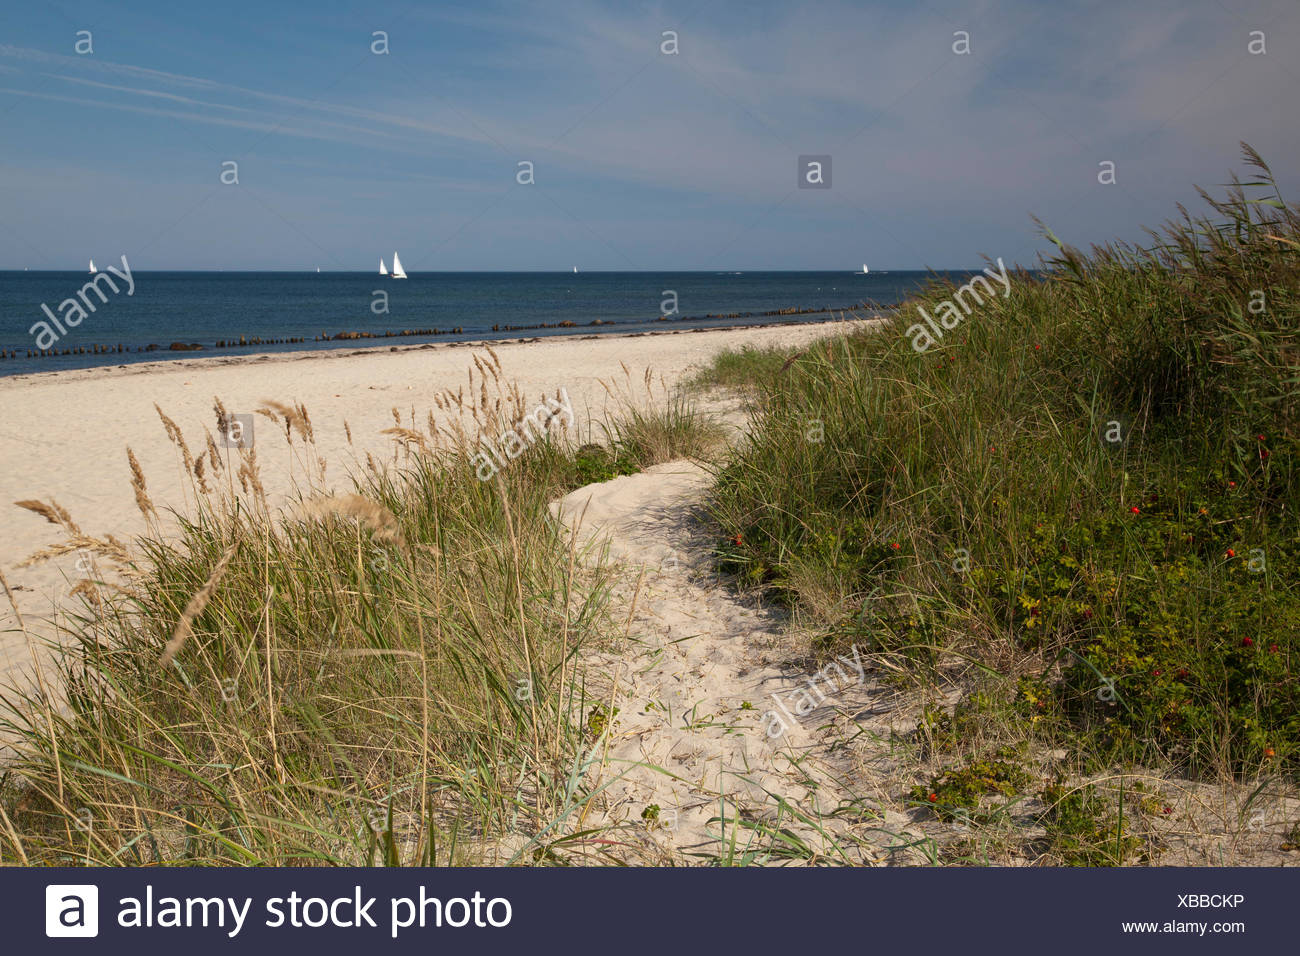 Coast at the Bukspitze or Buk cape, Baltic resort Kuehlungsborn, Mecklenburg-Western Pomerania, PublicGround - Stock Image